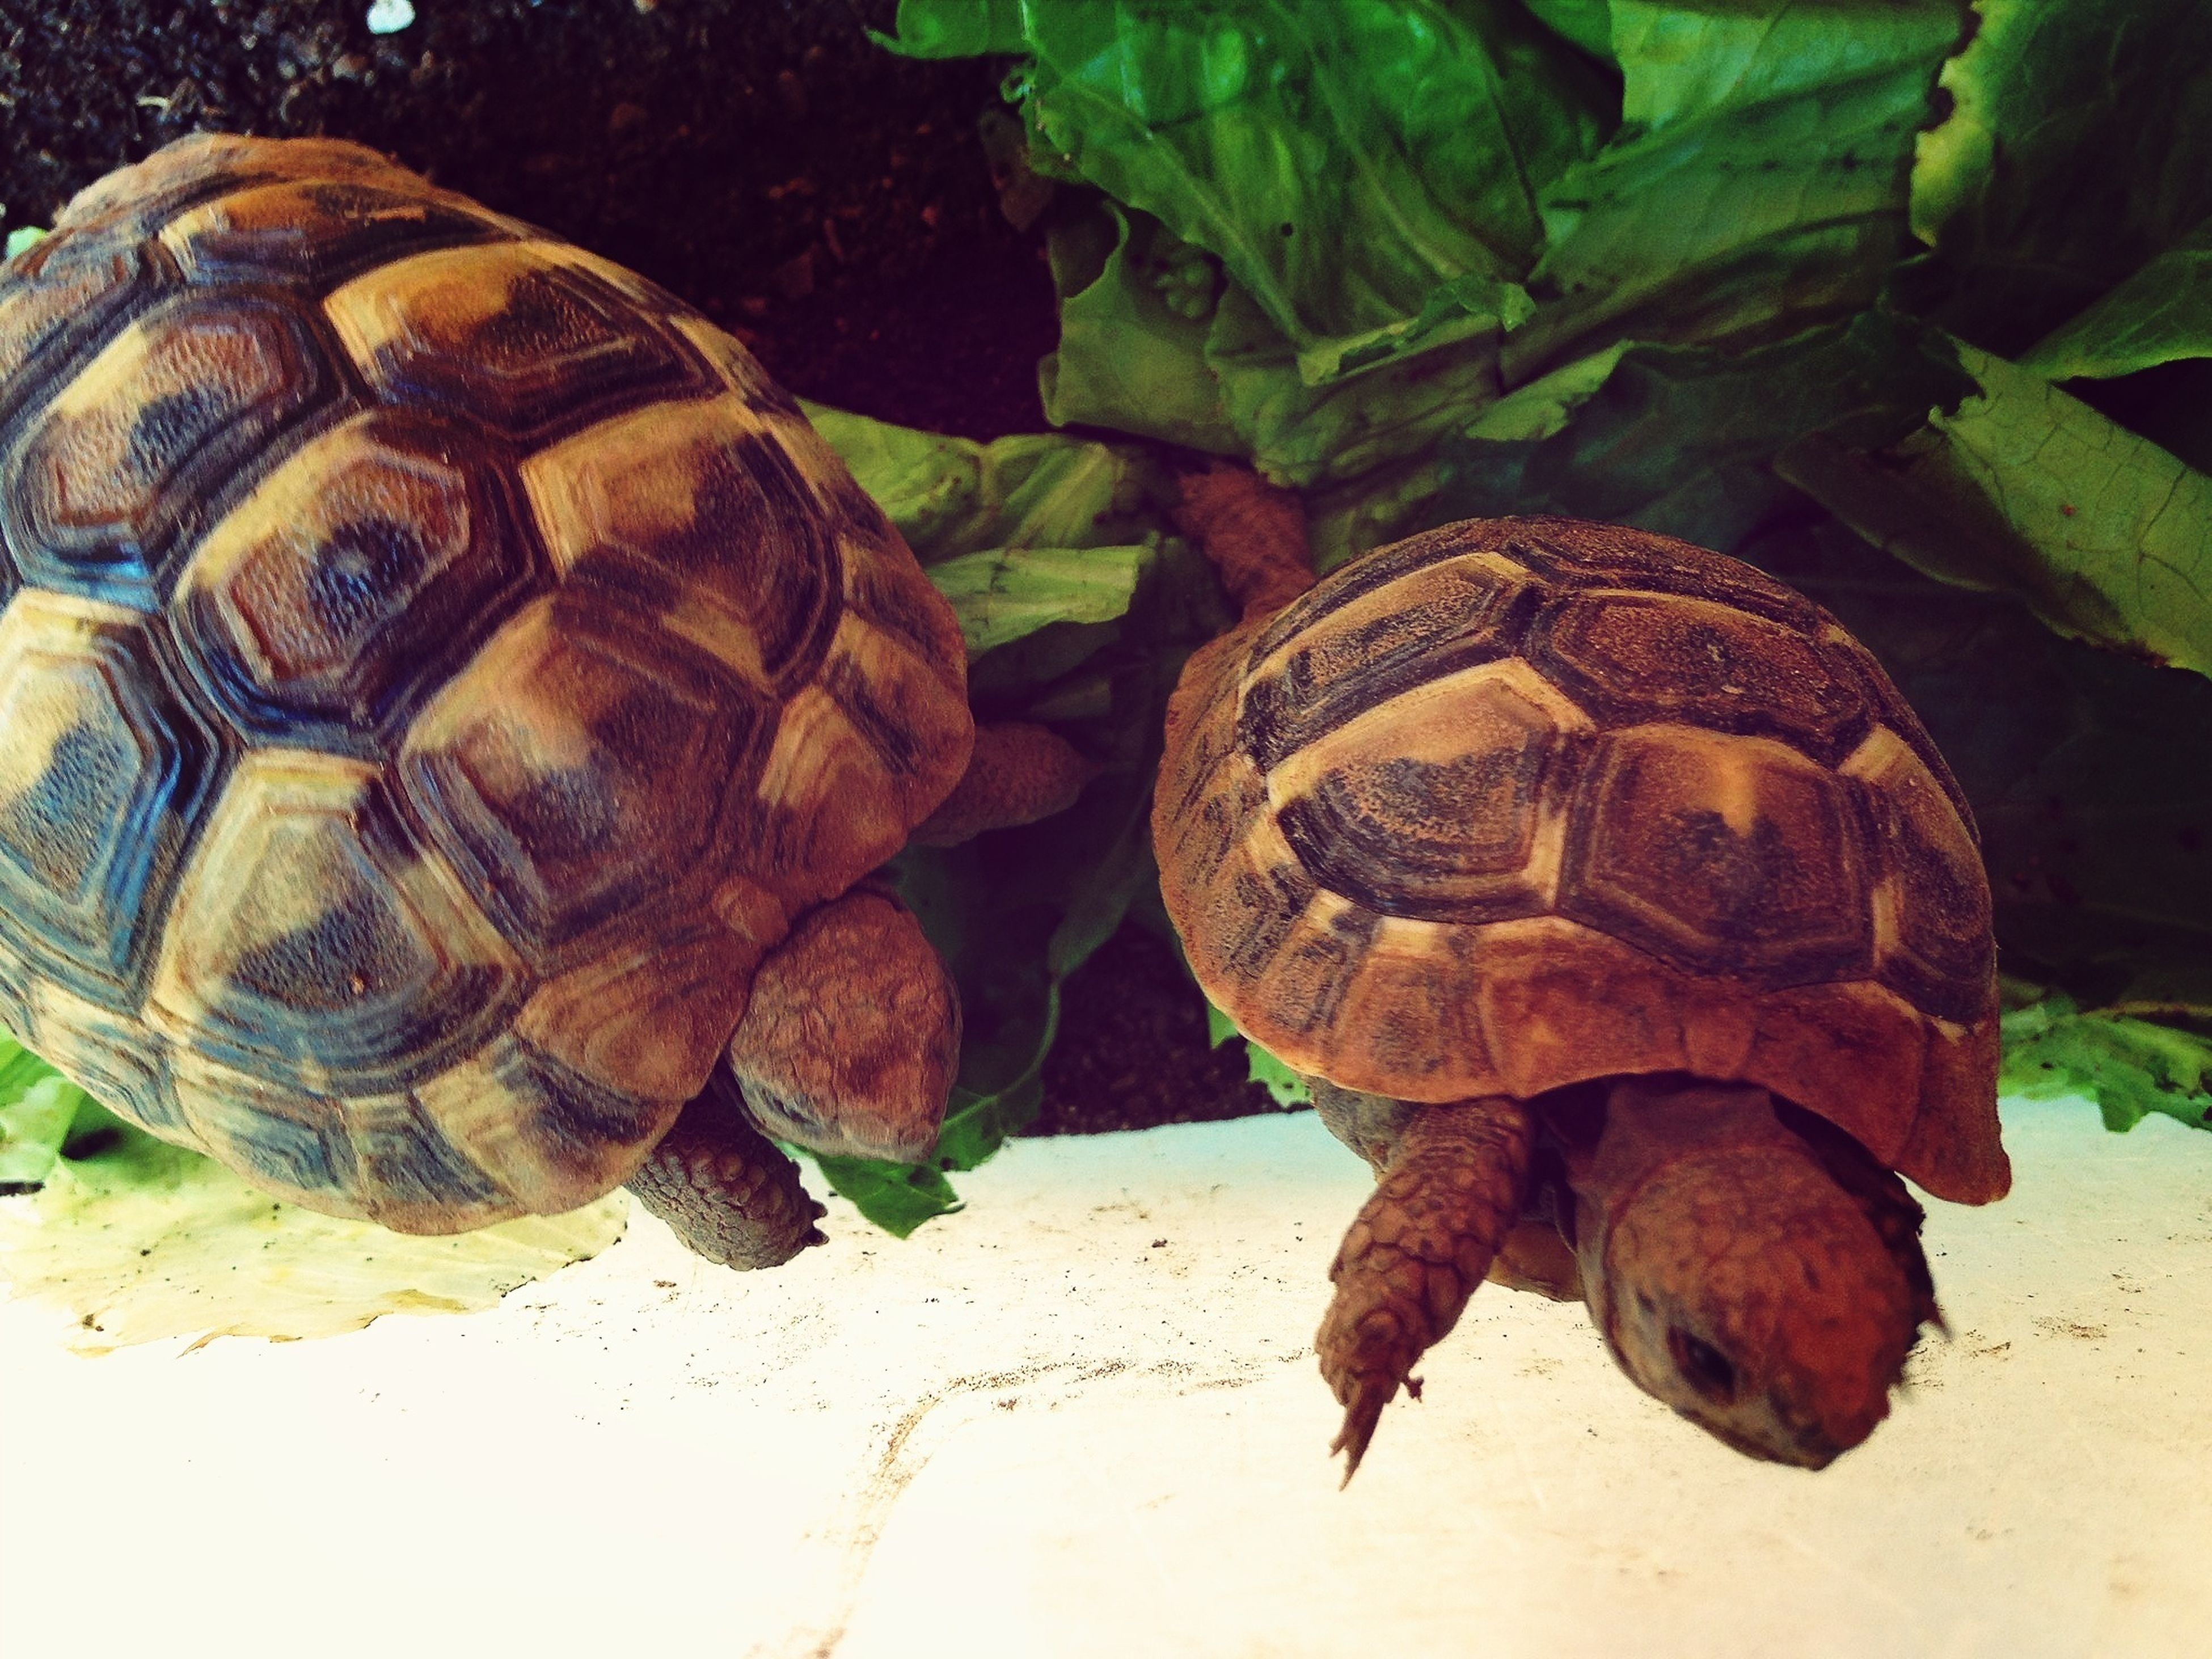 animal themes, animals in the wild, one animal, wildlife, animal shell, close-up, natural pattern, reptile, high angle view, nature, turtle, leaf, outdoors, day, insect, no people, snail, tortoise, animal markings, zoology